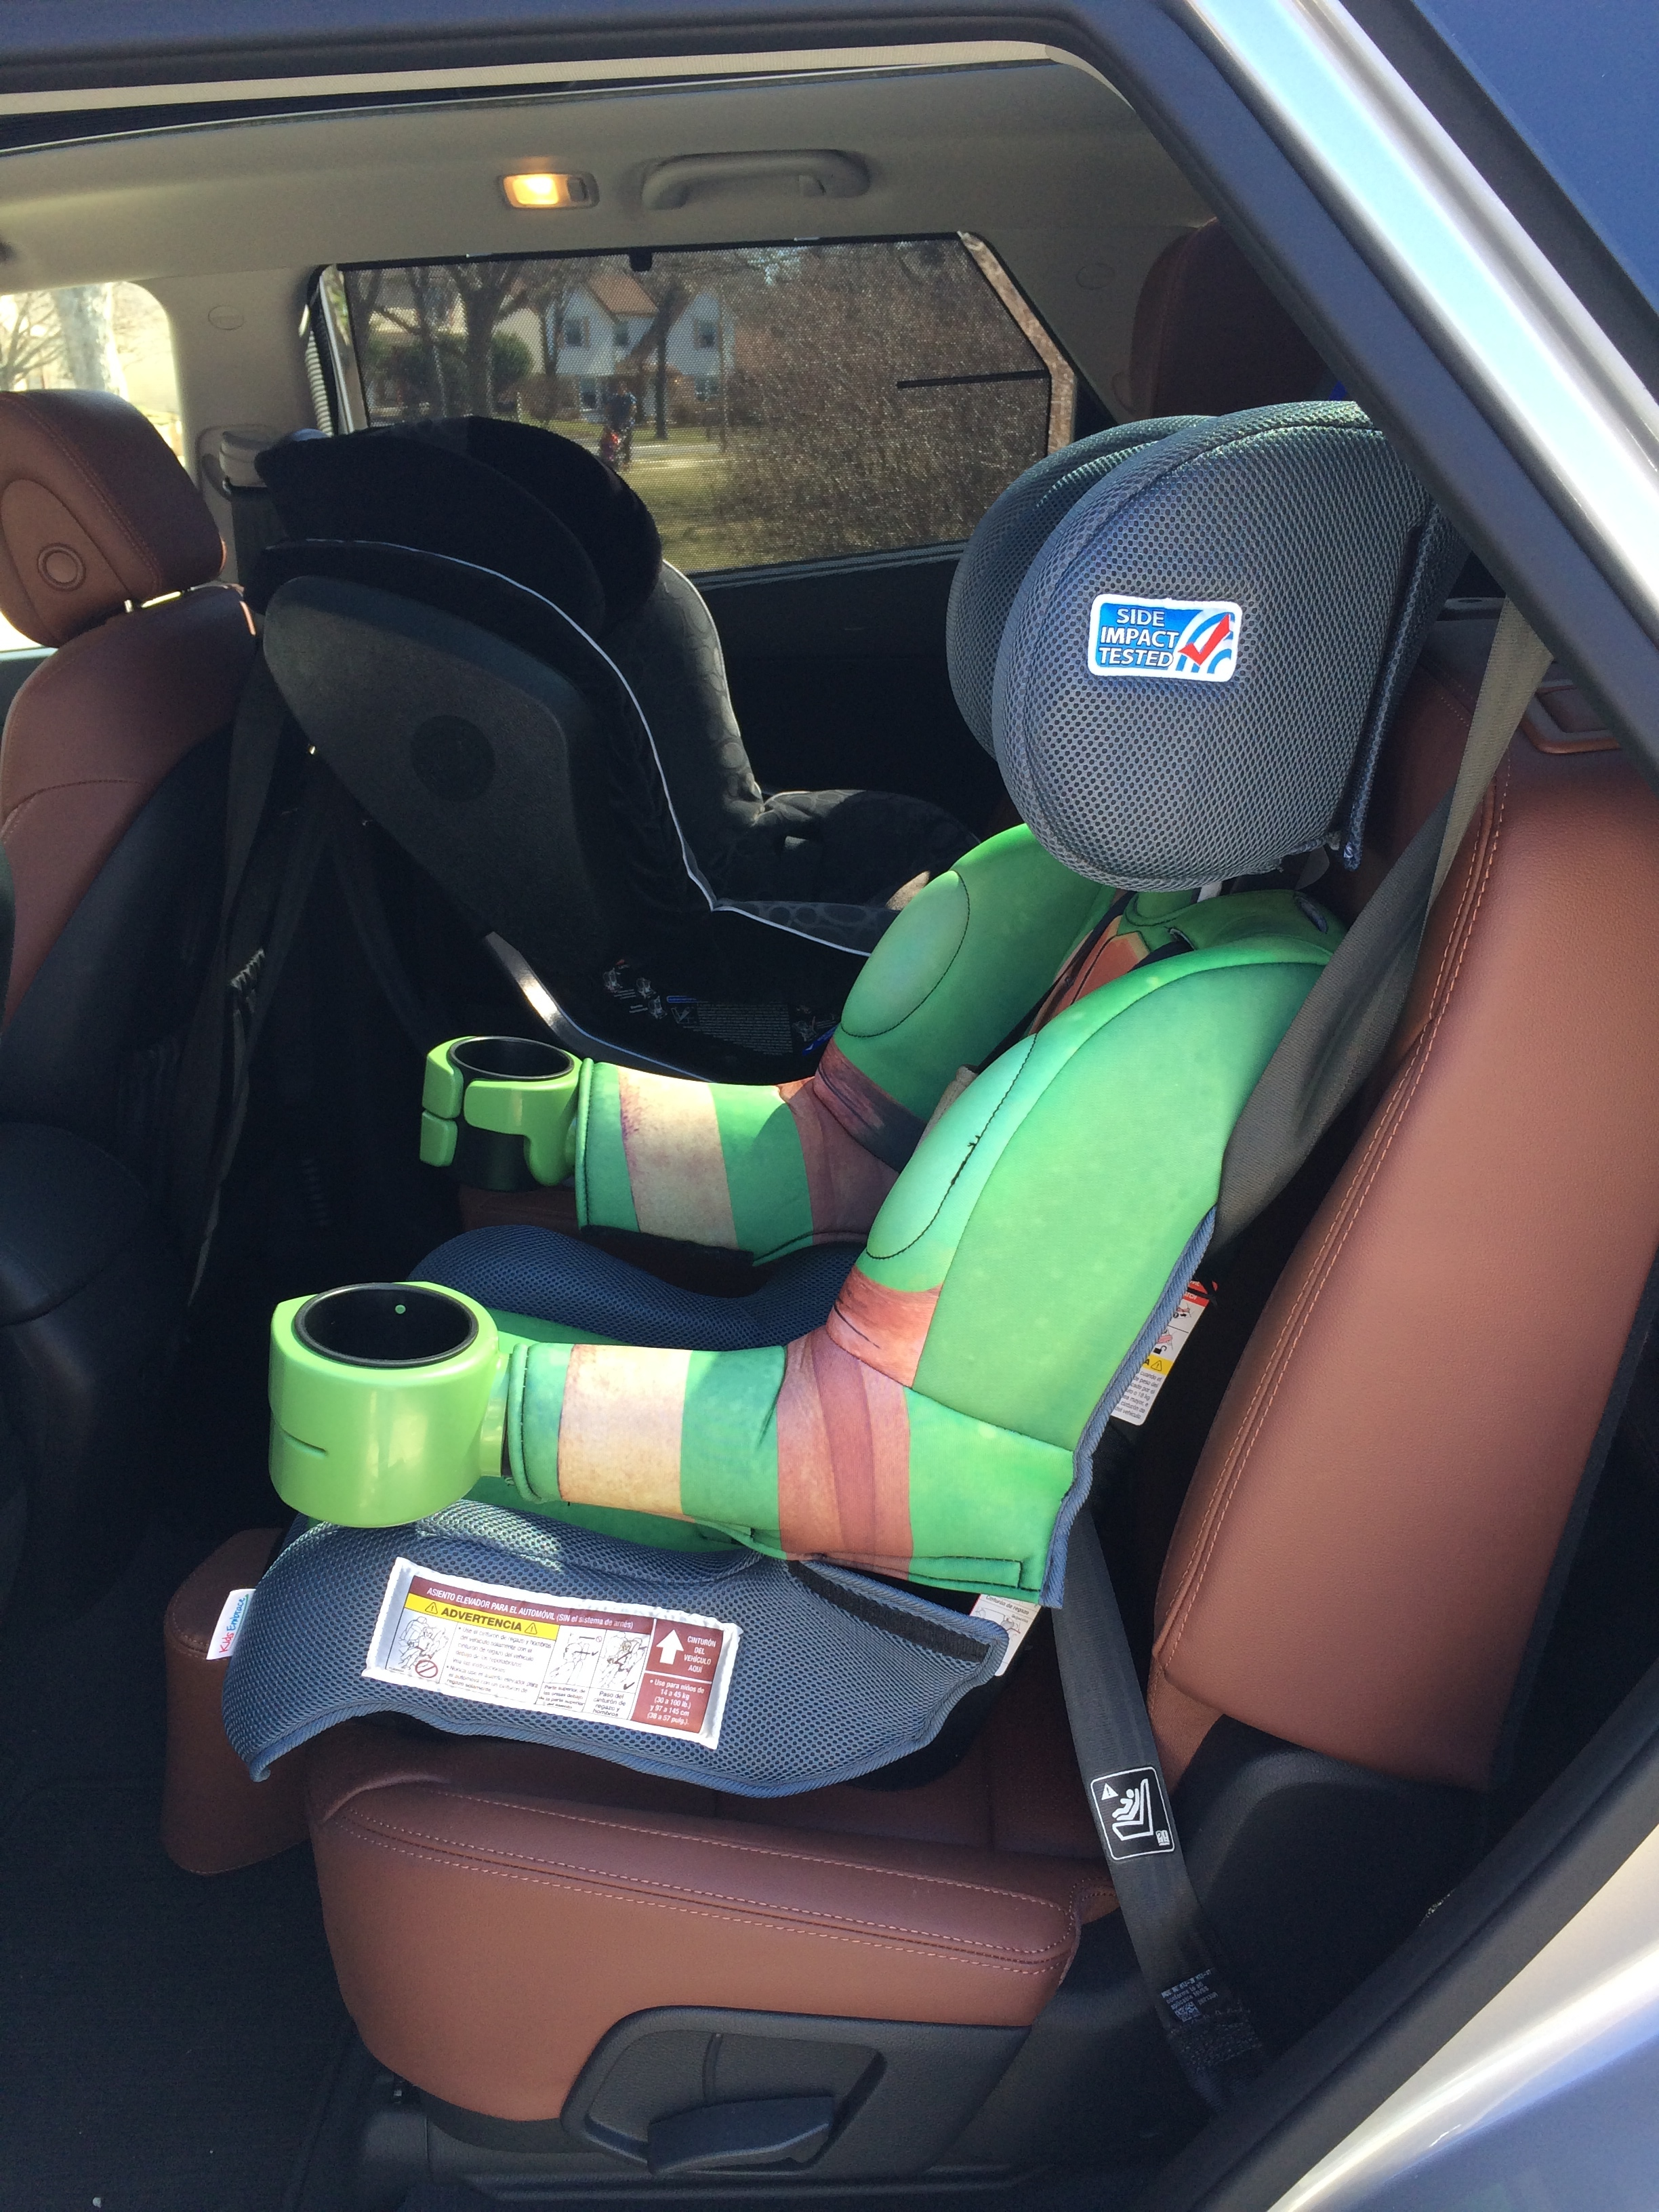 Diono Booster Car Seat ... : The Most Trusted Source for Car Seat Reviews, Ratings, Deals & News